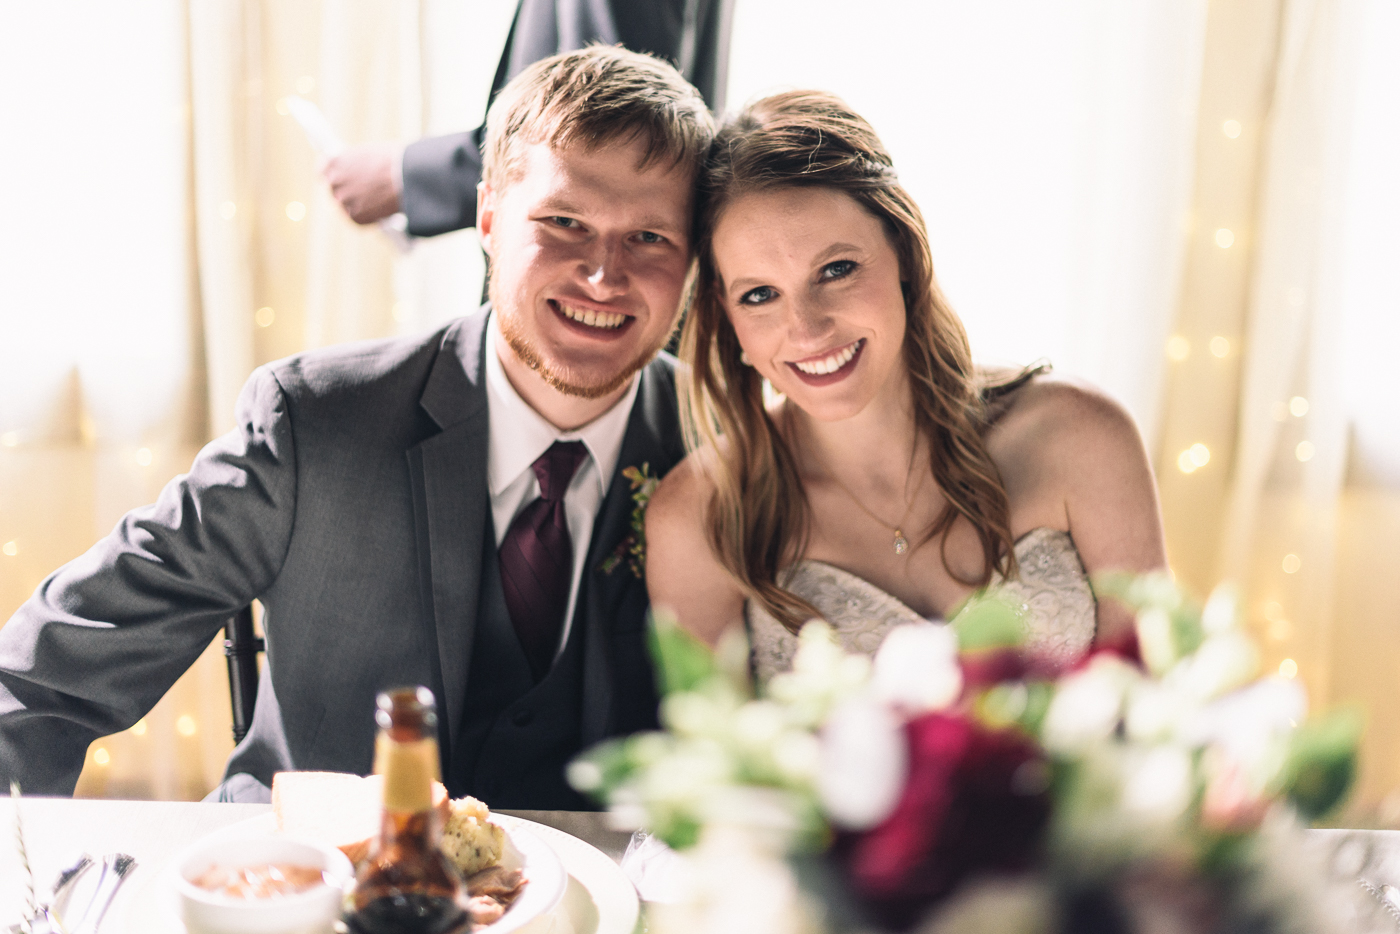 newlyweds happily ever after mr. and mrs. bride and groom husband and wife wedding reception